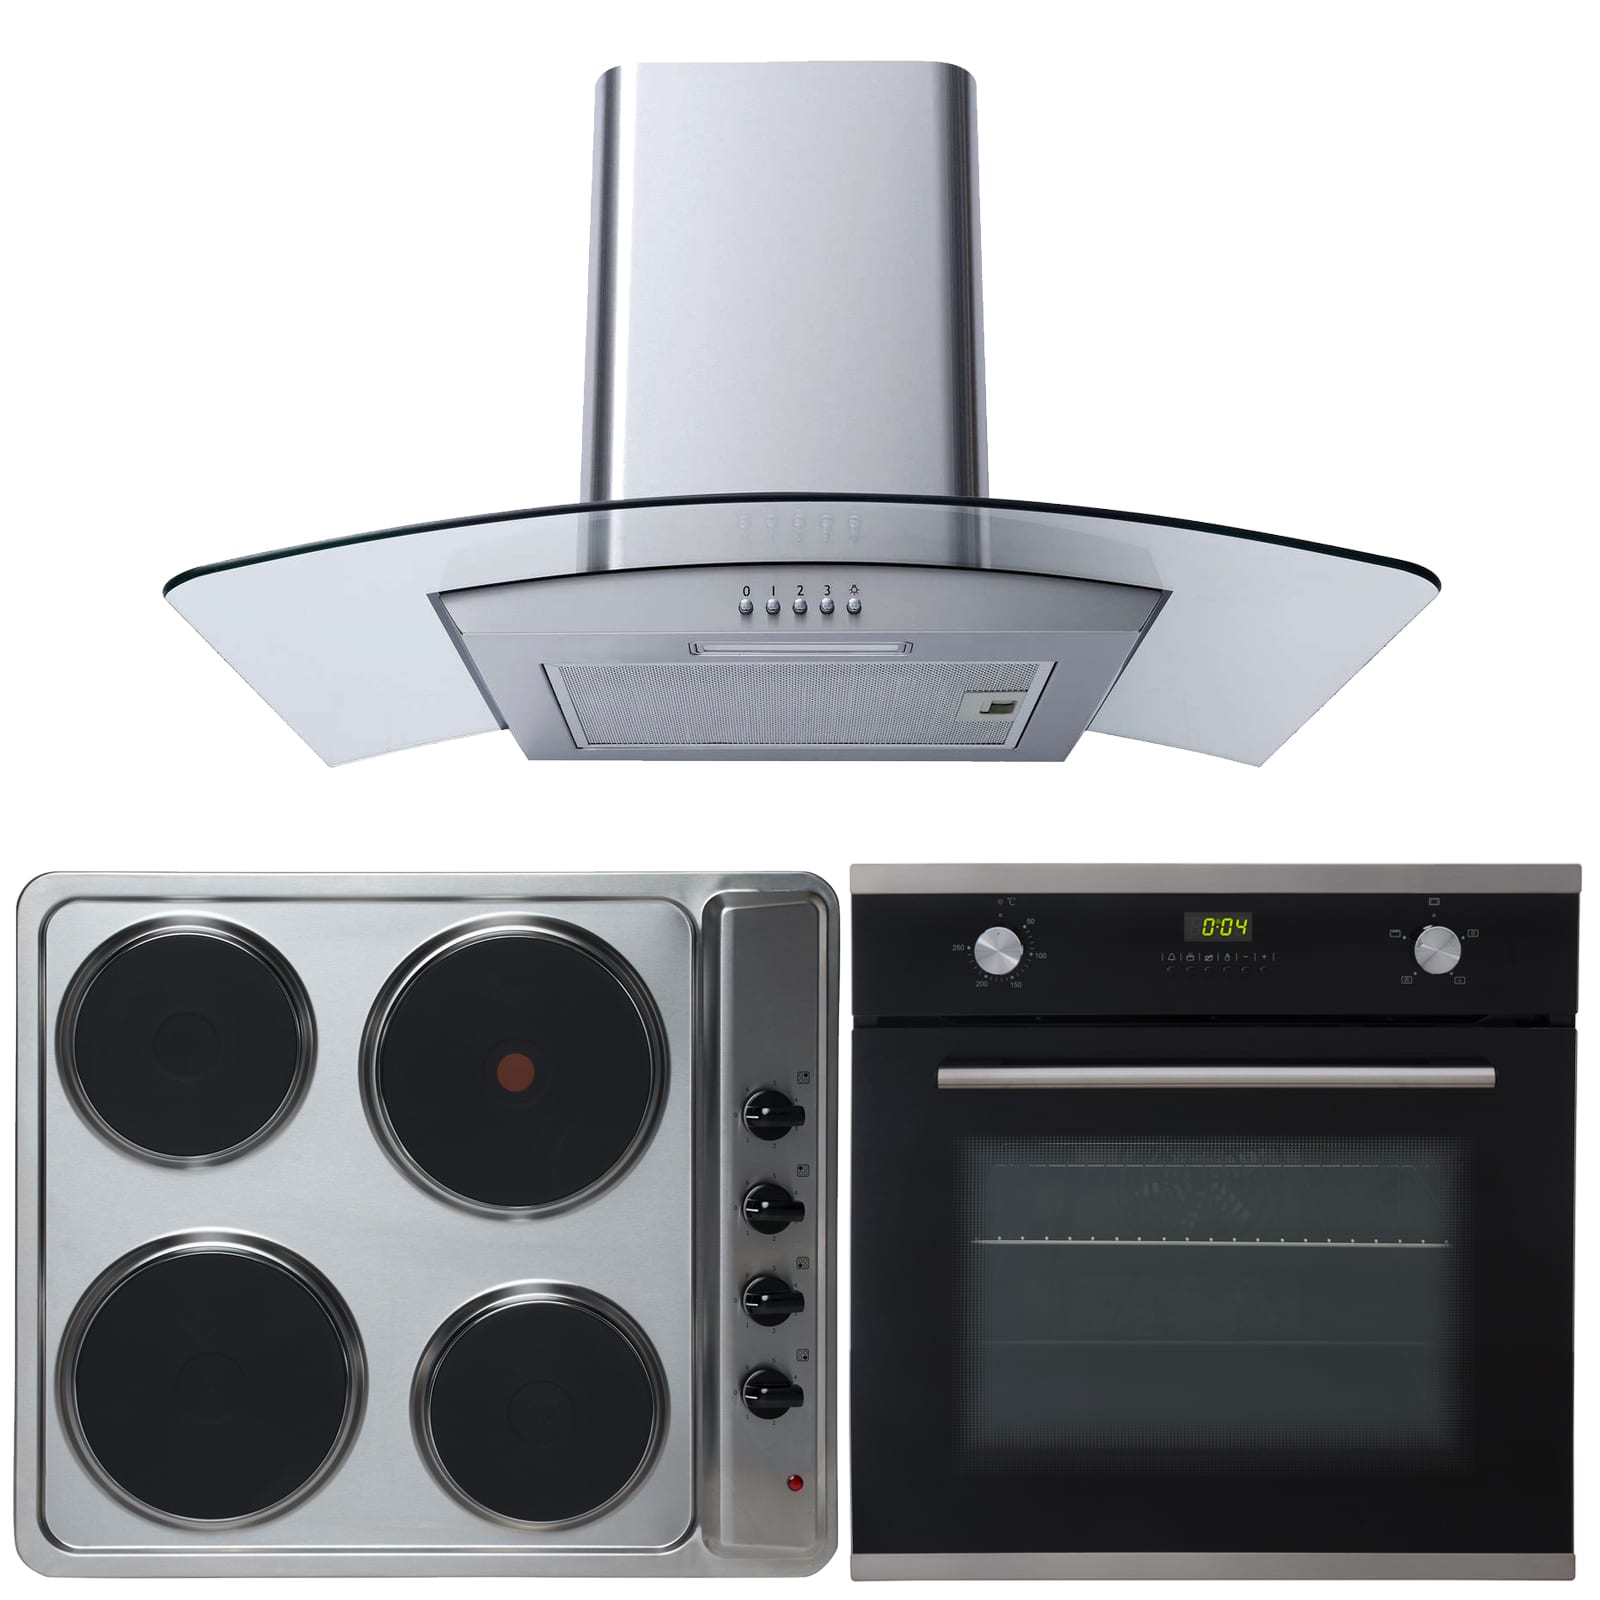 SIA 60cm Single Electric Oven, 4 Ring Electric Hob & Curved Glass Cooker Hood at Ship It Appliances